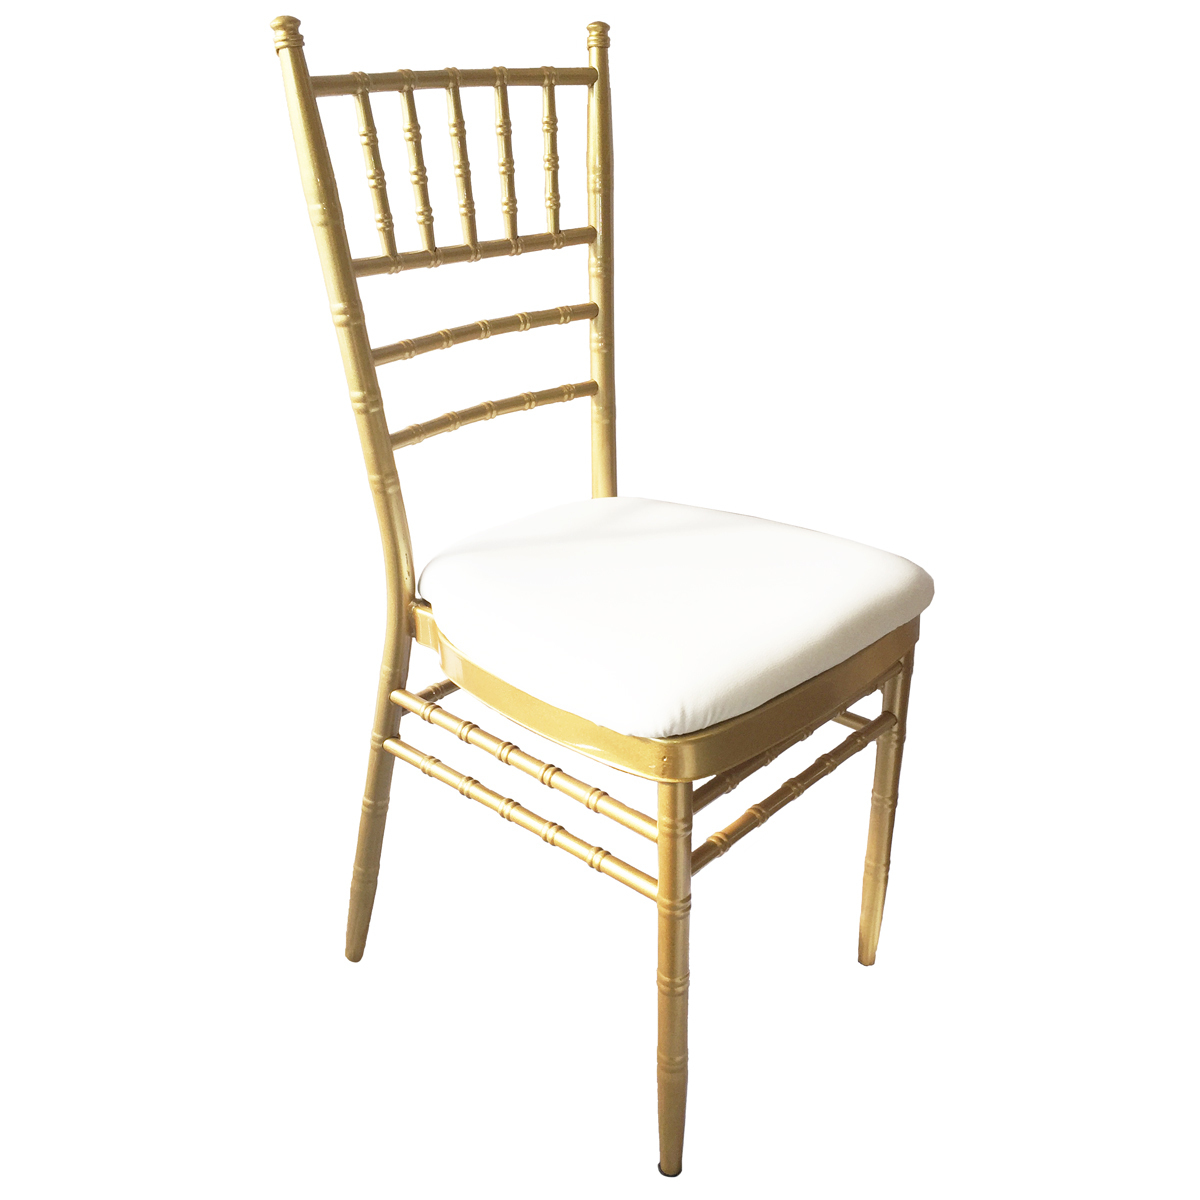 Gold Chair Rental Light Gold Chiavari Chair Rental Chiavari Chair Rentals